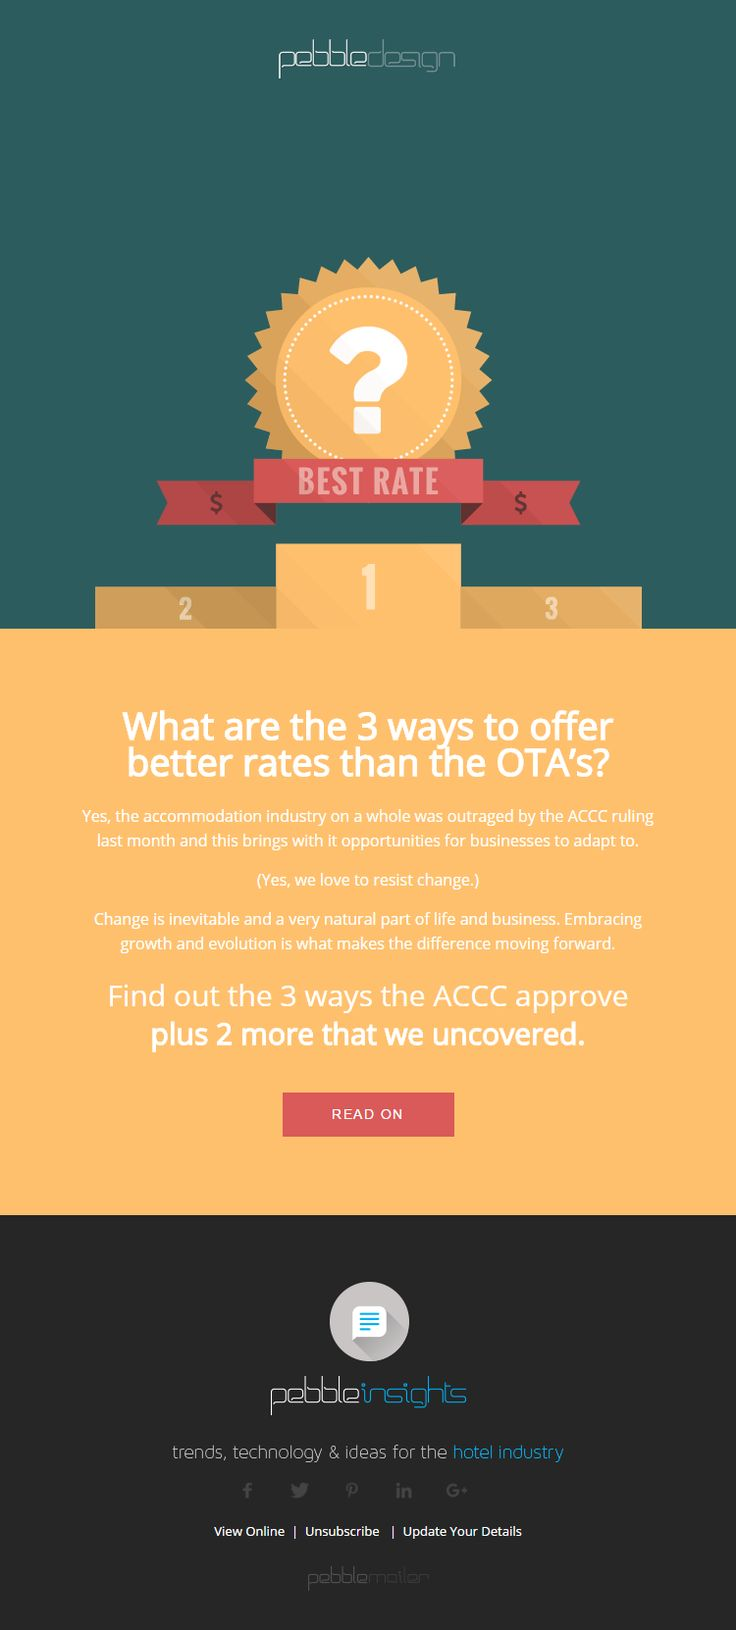 What are the 3 ways to offer better rates than the OTA's? - Hospitality Insights #hospitalityinsights #hotelwebdesign #hotelwebsitedesign #pebbledesign #hotelwebsites